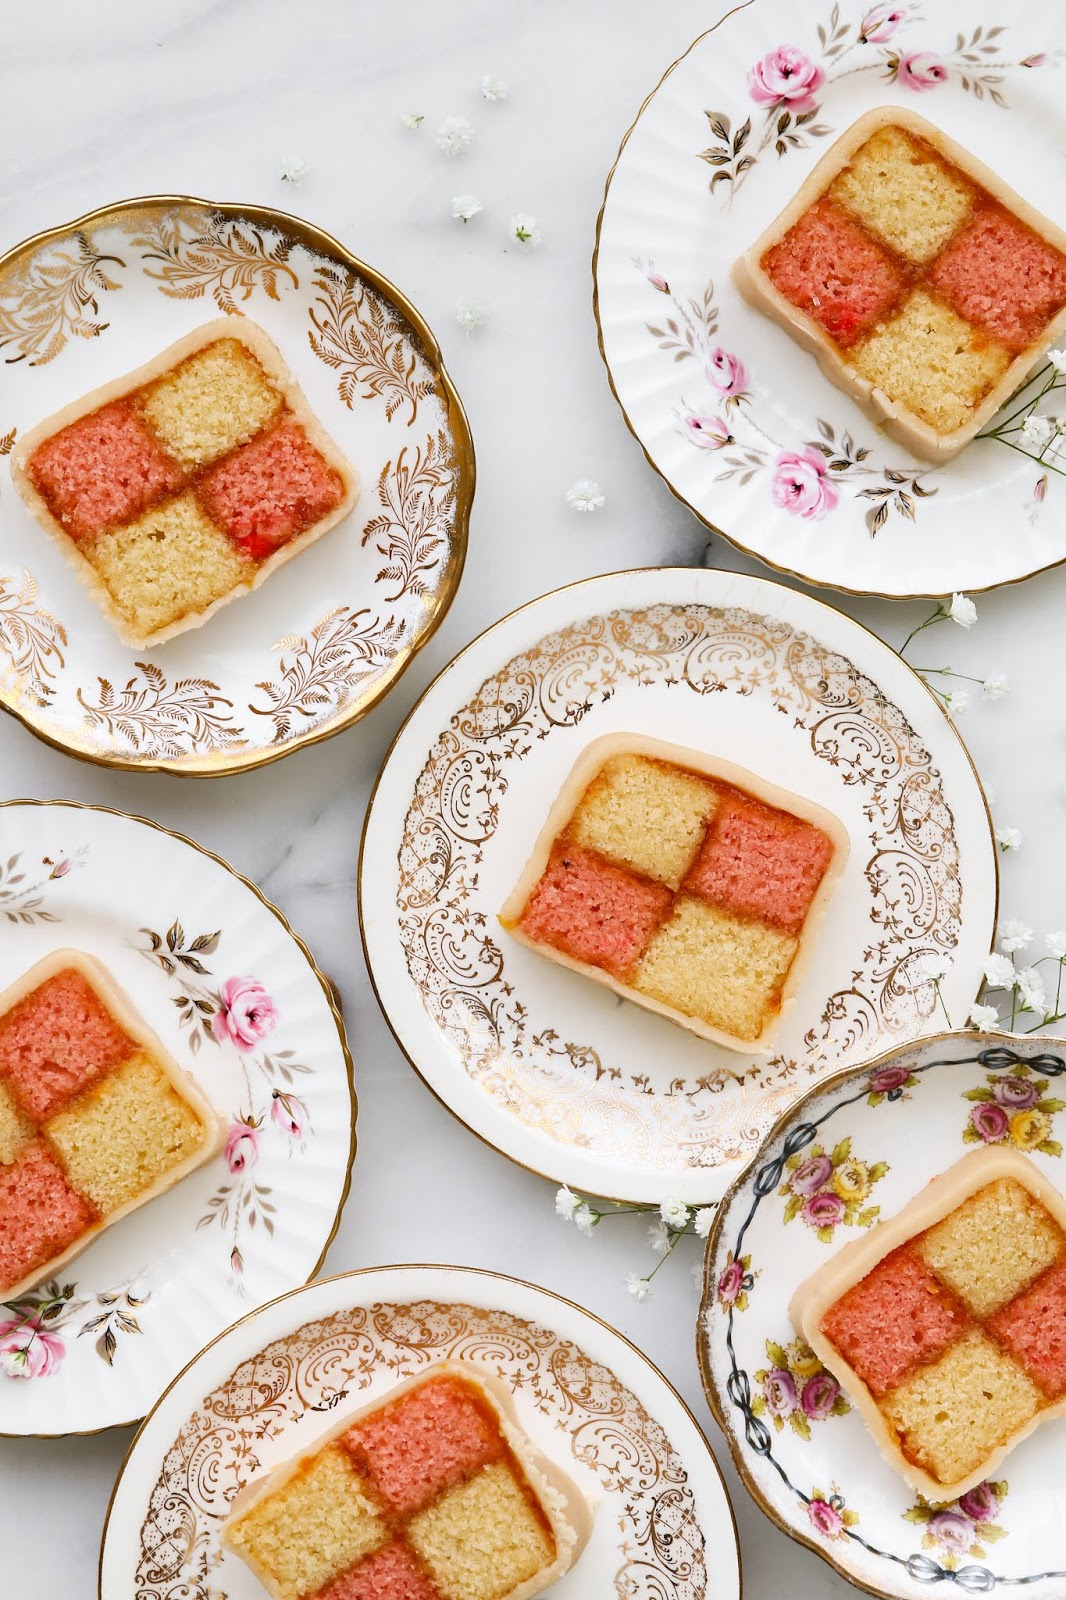 battenberg cake with marzipan